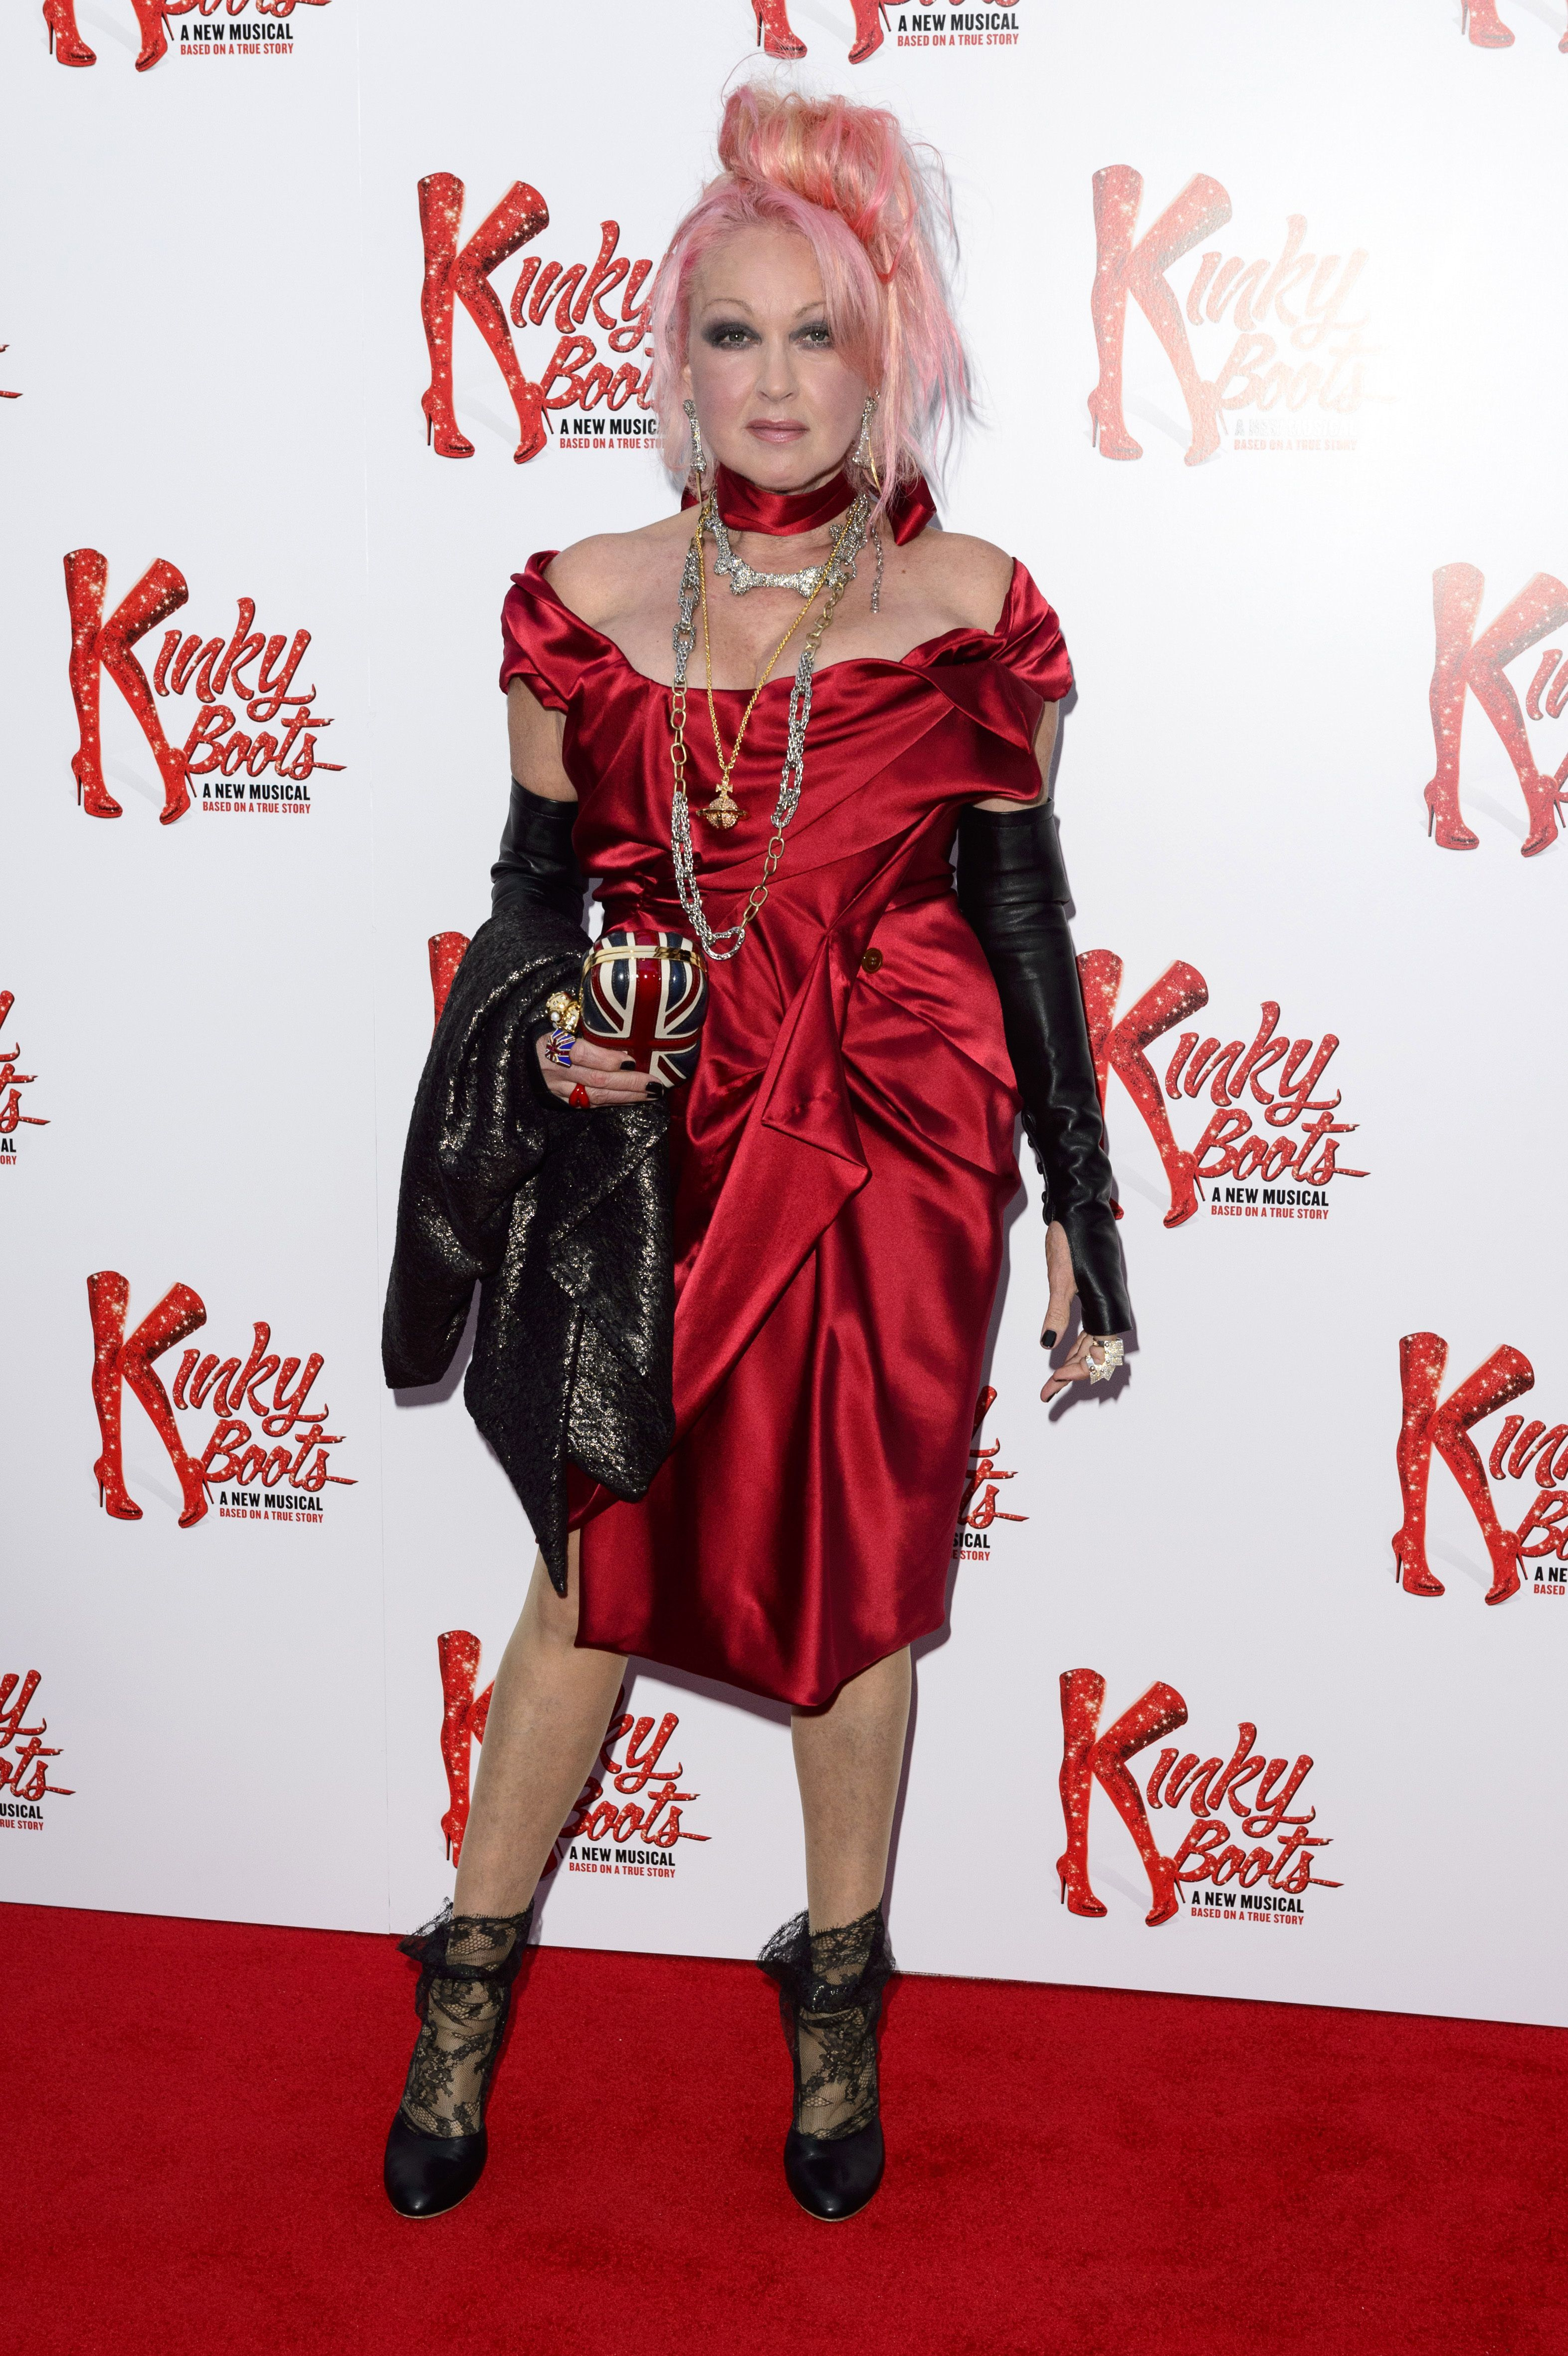 Cyndi Lauper lost money for supporting the LGBQT community